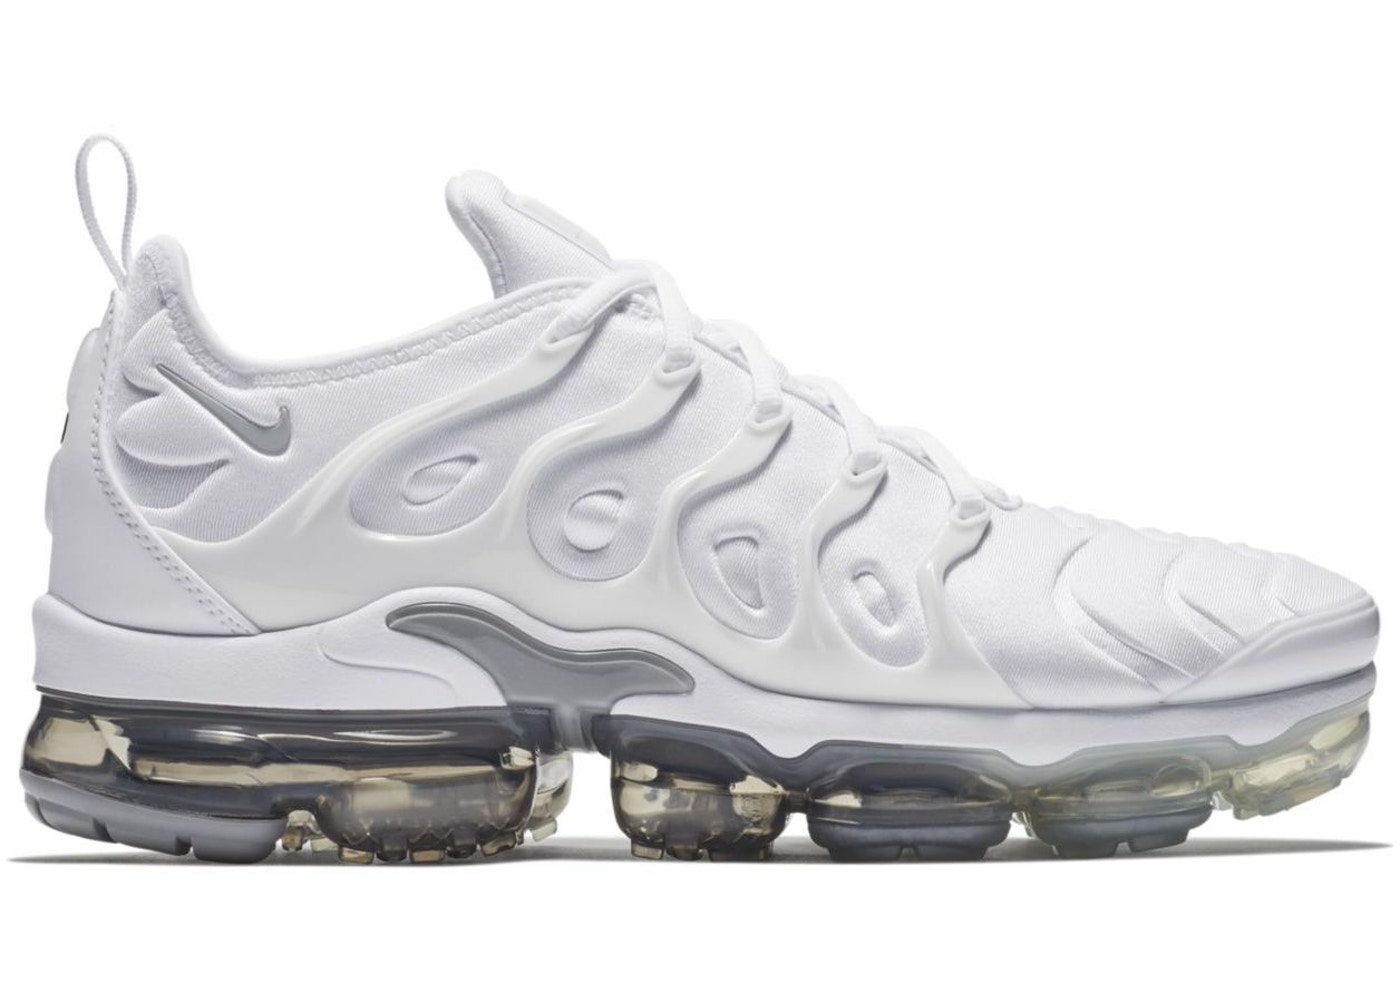 e73b46d2efbf2 Air VaporMax Plus White Pure Platinum - 924453-102